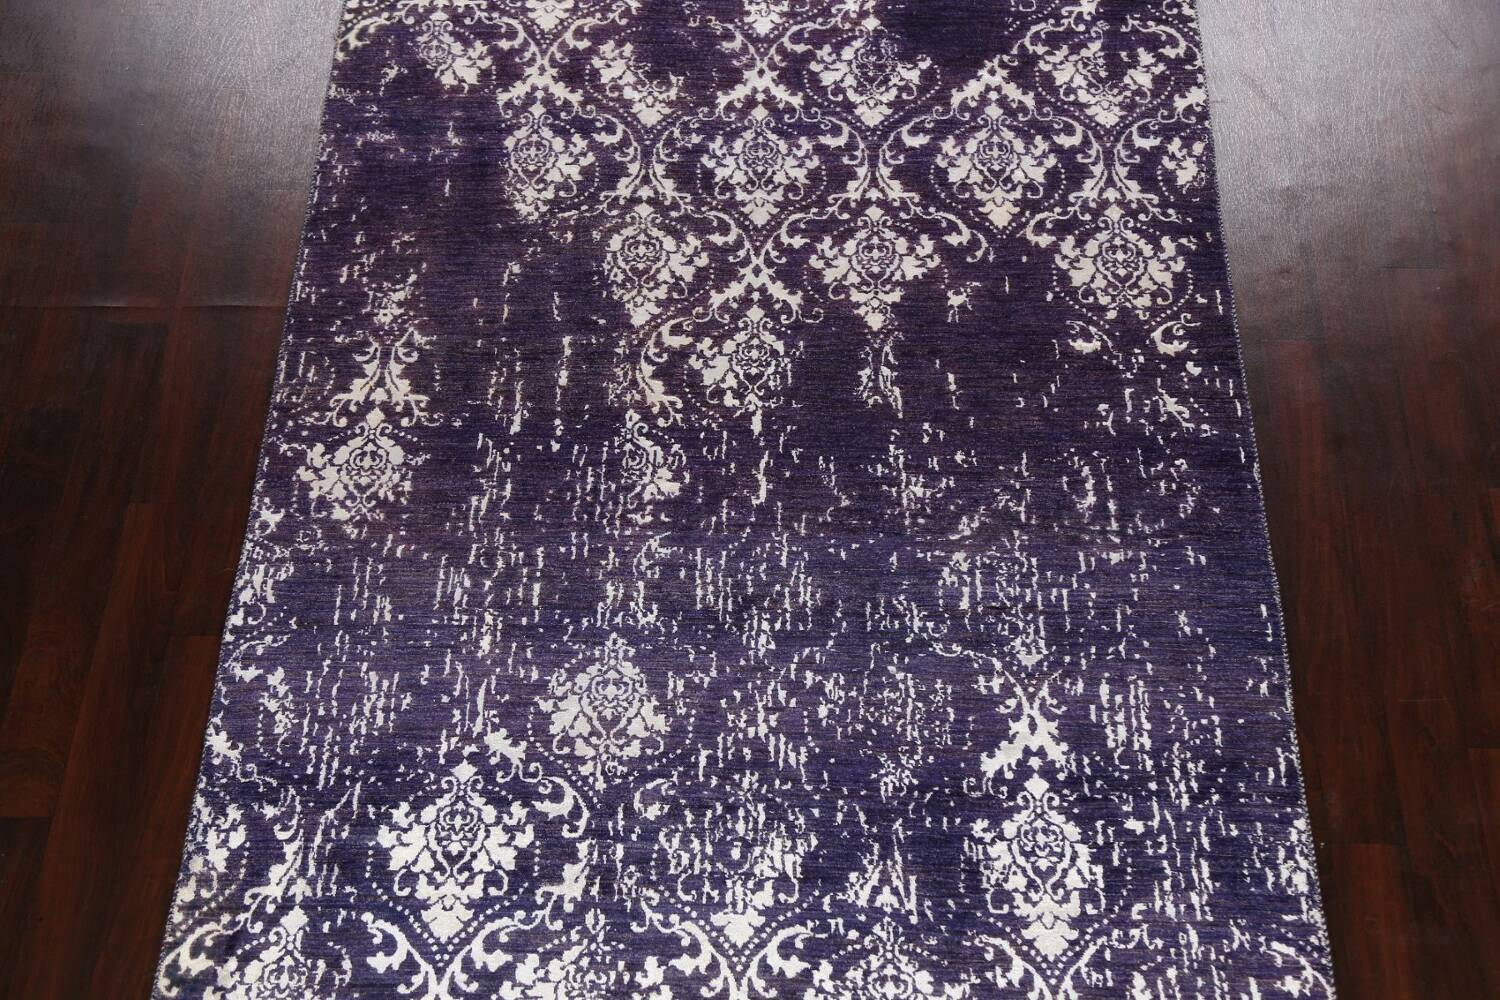 Vegetable Dye Distressed Abstract Oriental Area Rug 6x9 image 3